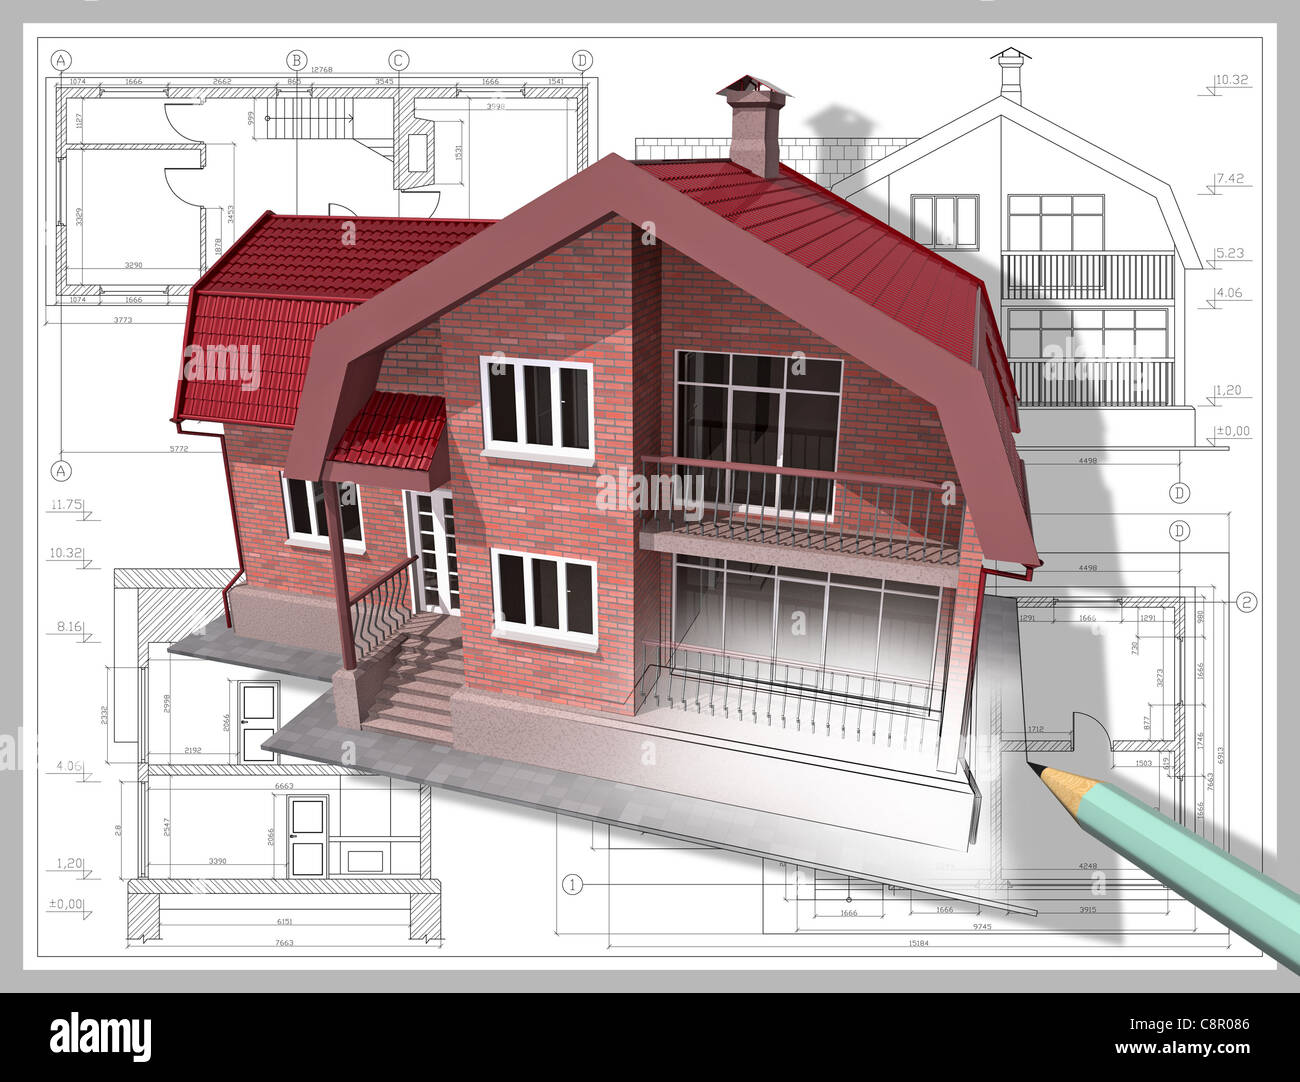 3d isometric view the residential house on architect u0026 39 s